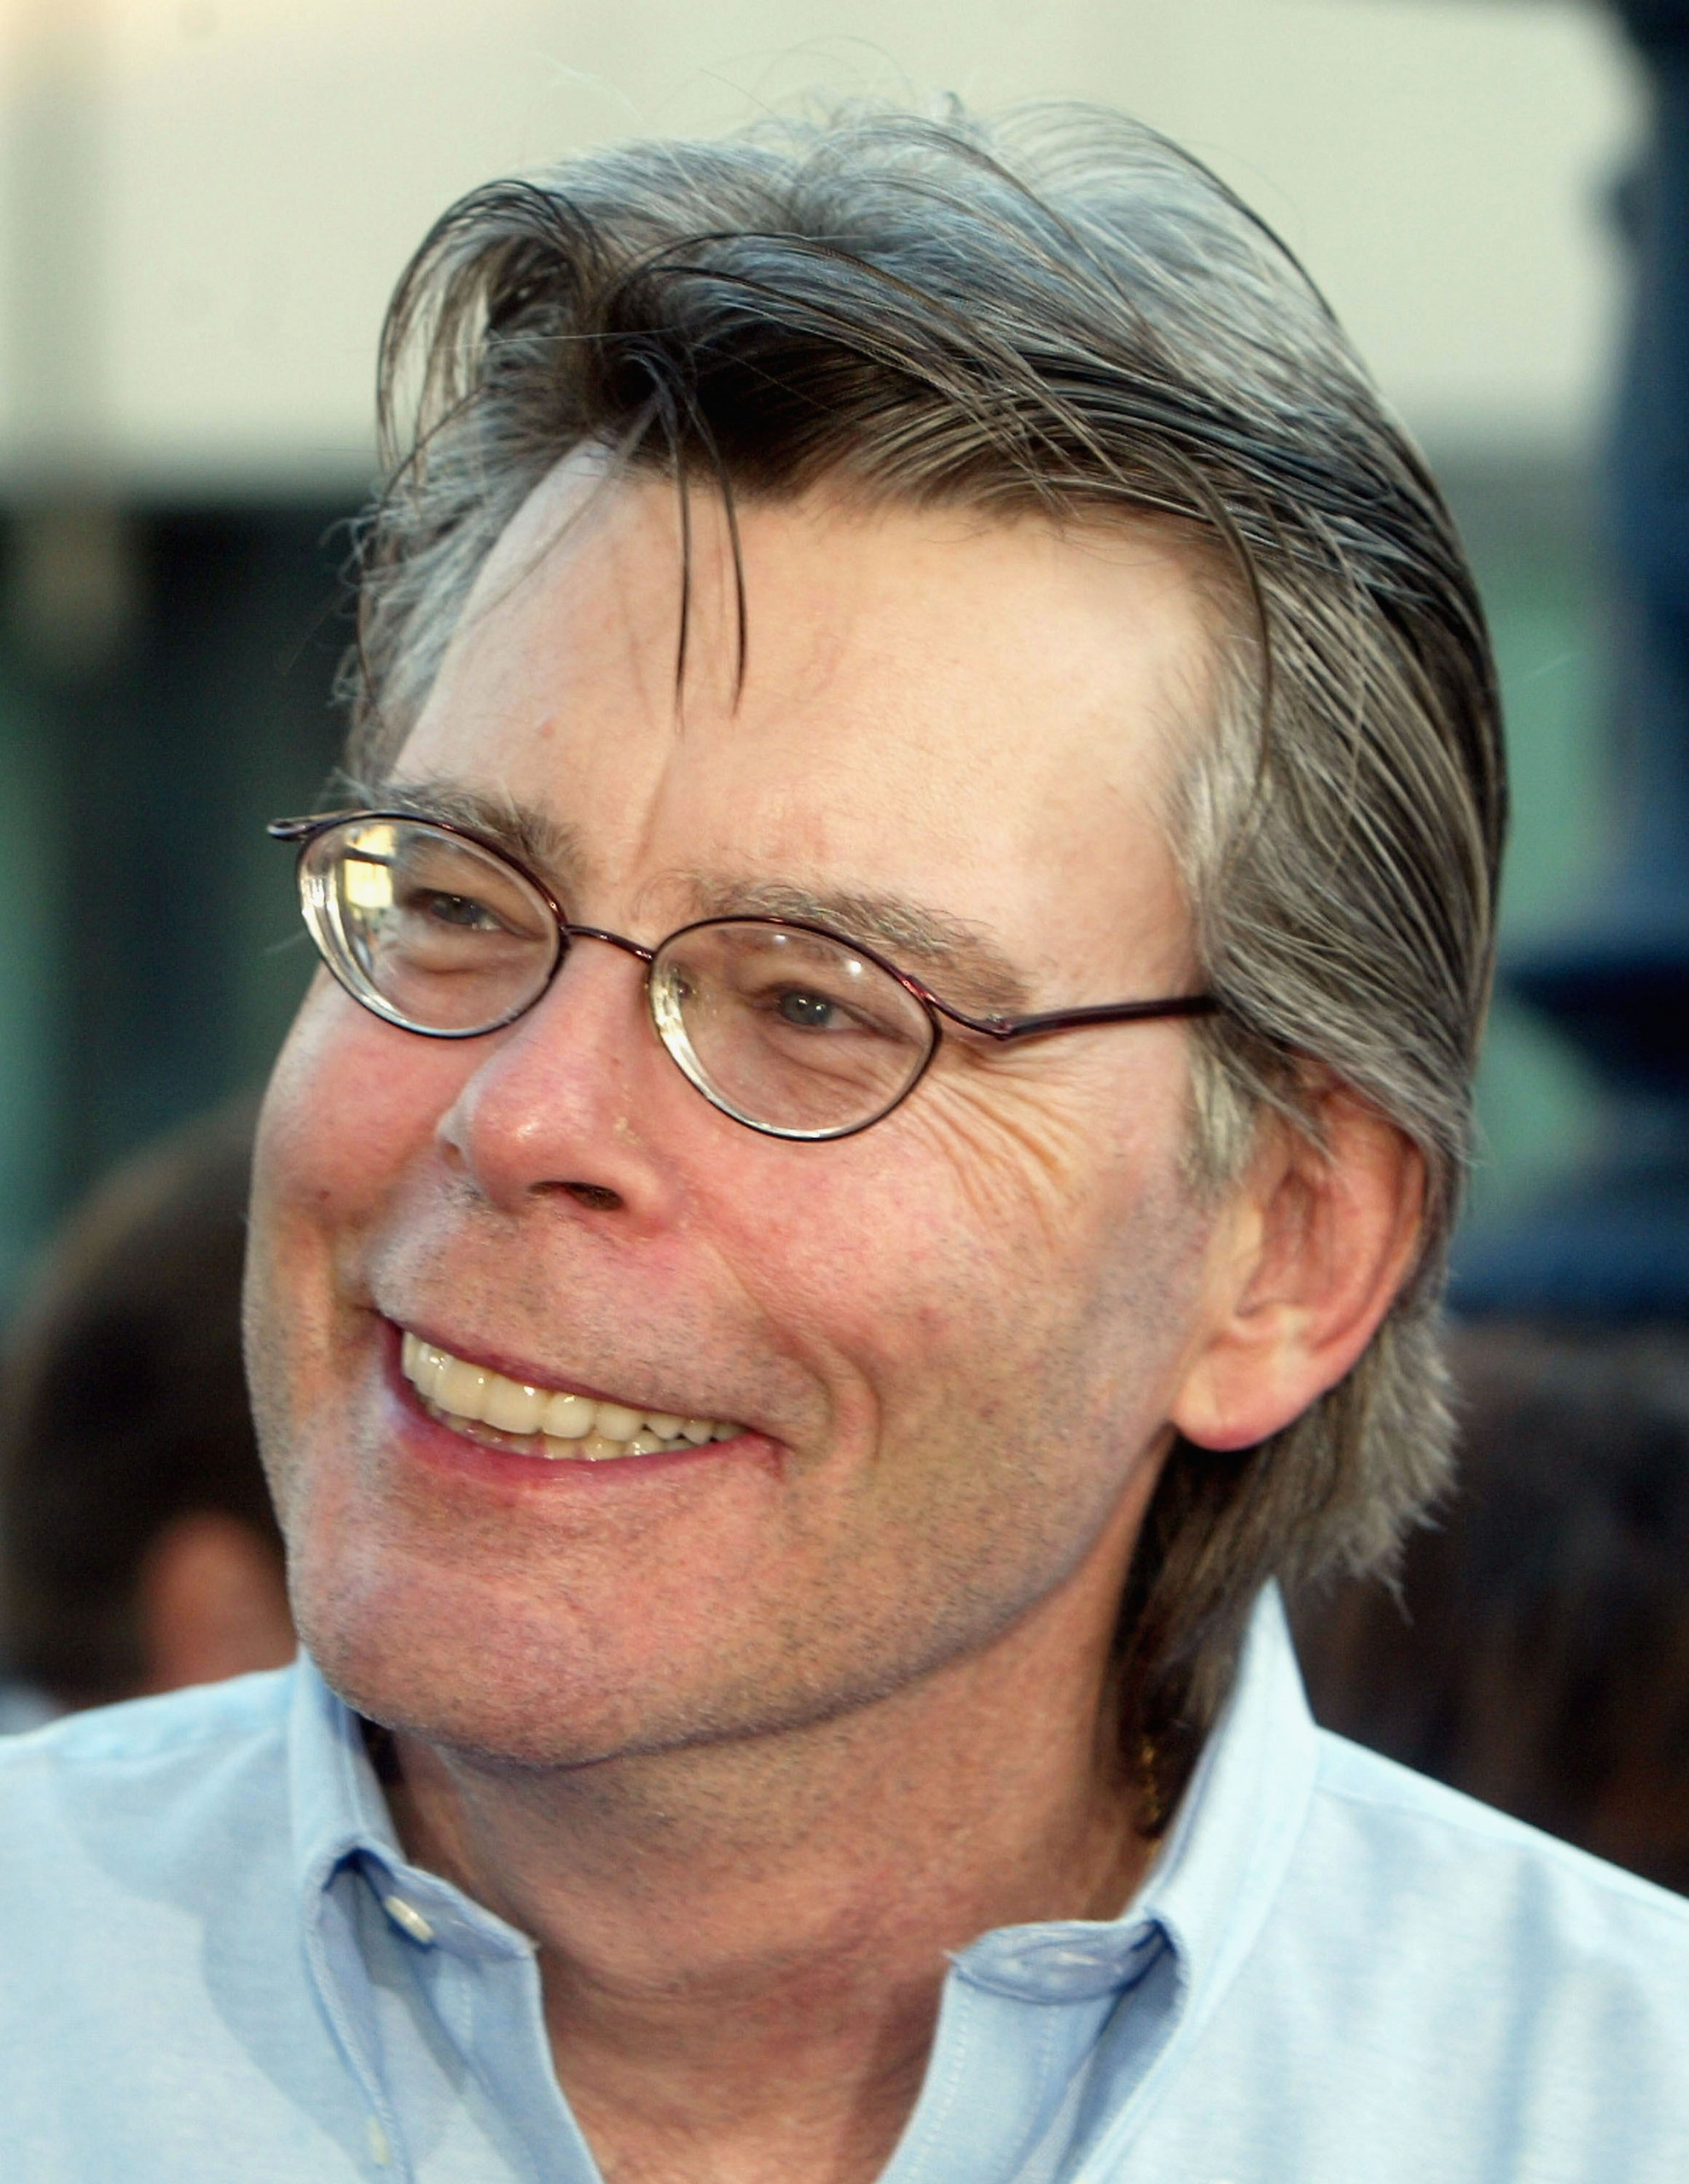 Stephen King - Stephen King Photo (20117261) - Fanpop